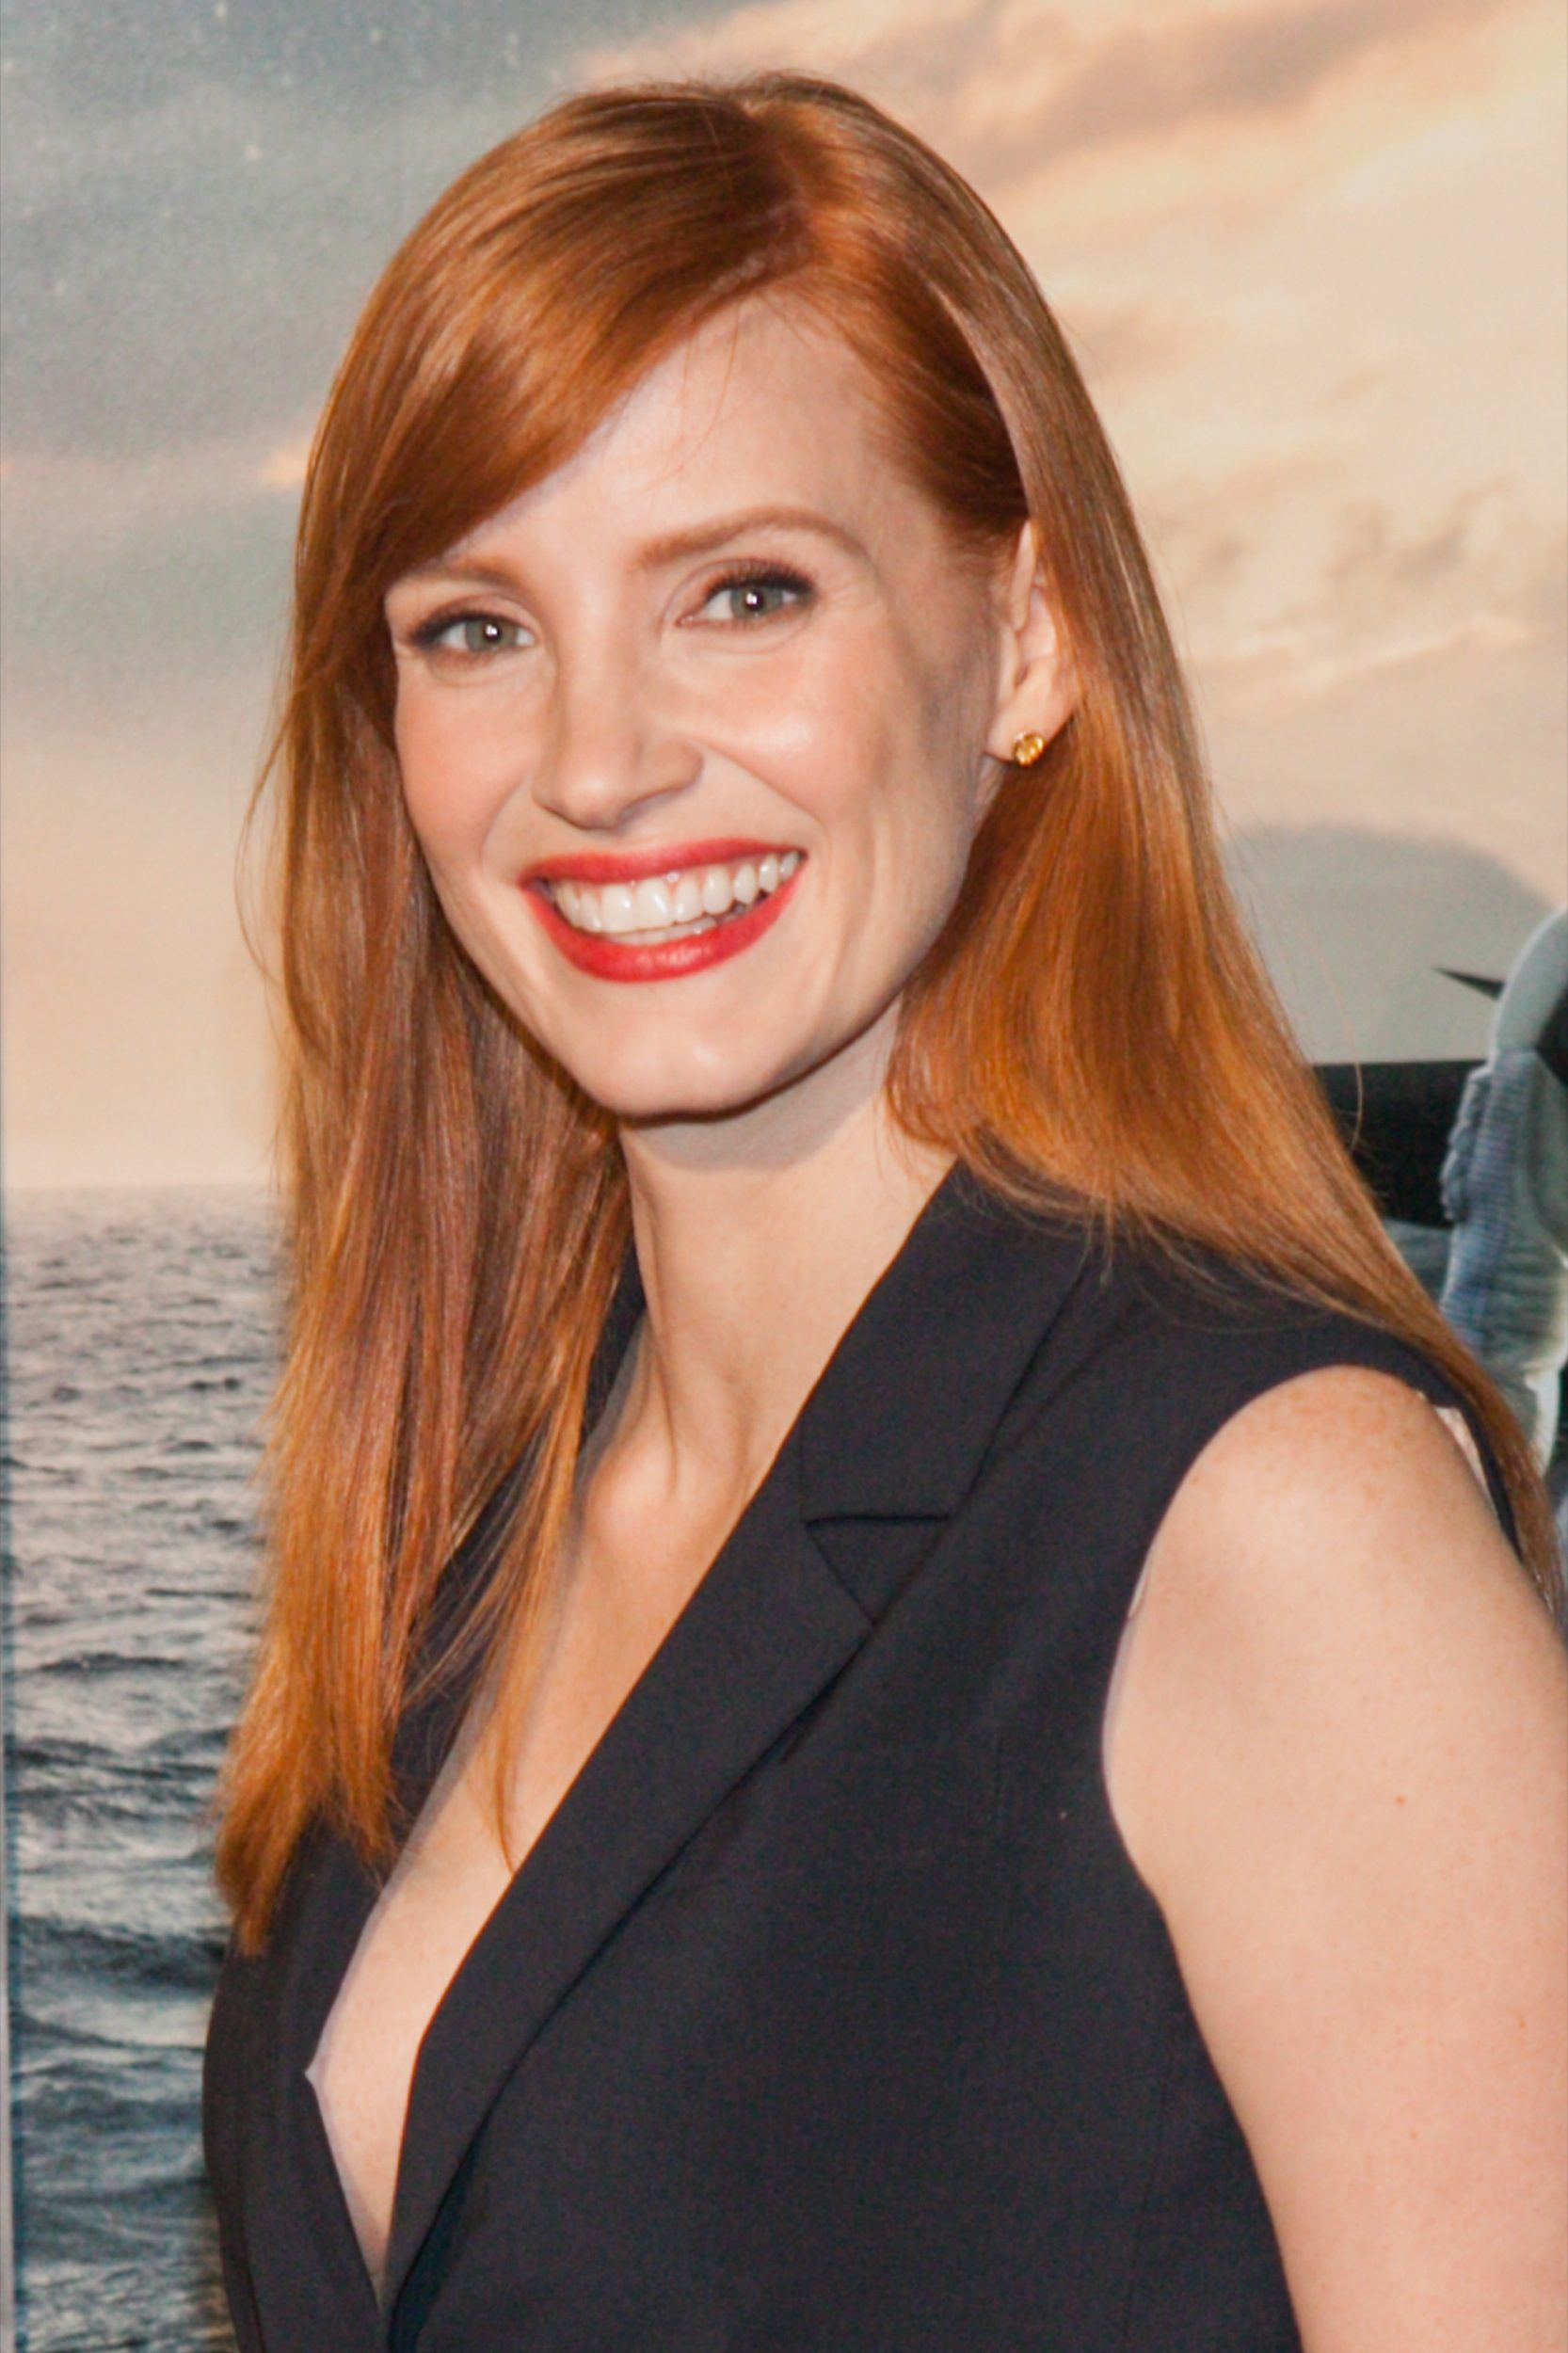 Jessica Chastain photo 1674 of 2393 pics, wallpaper ... Jessica Chastain Facebook